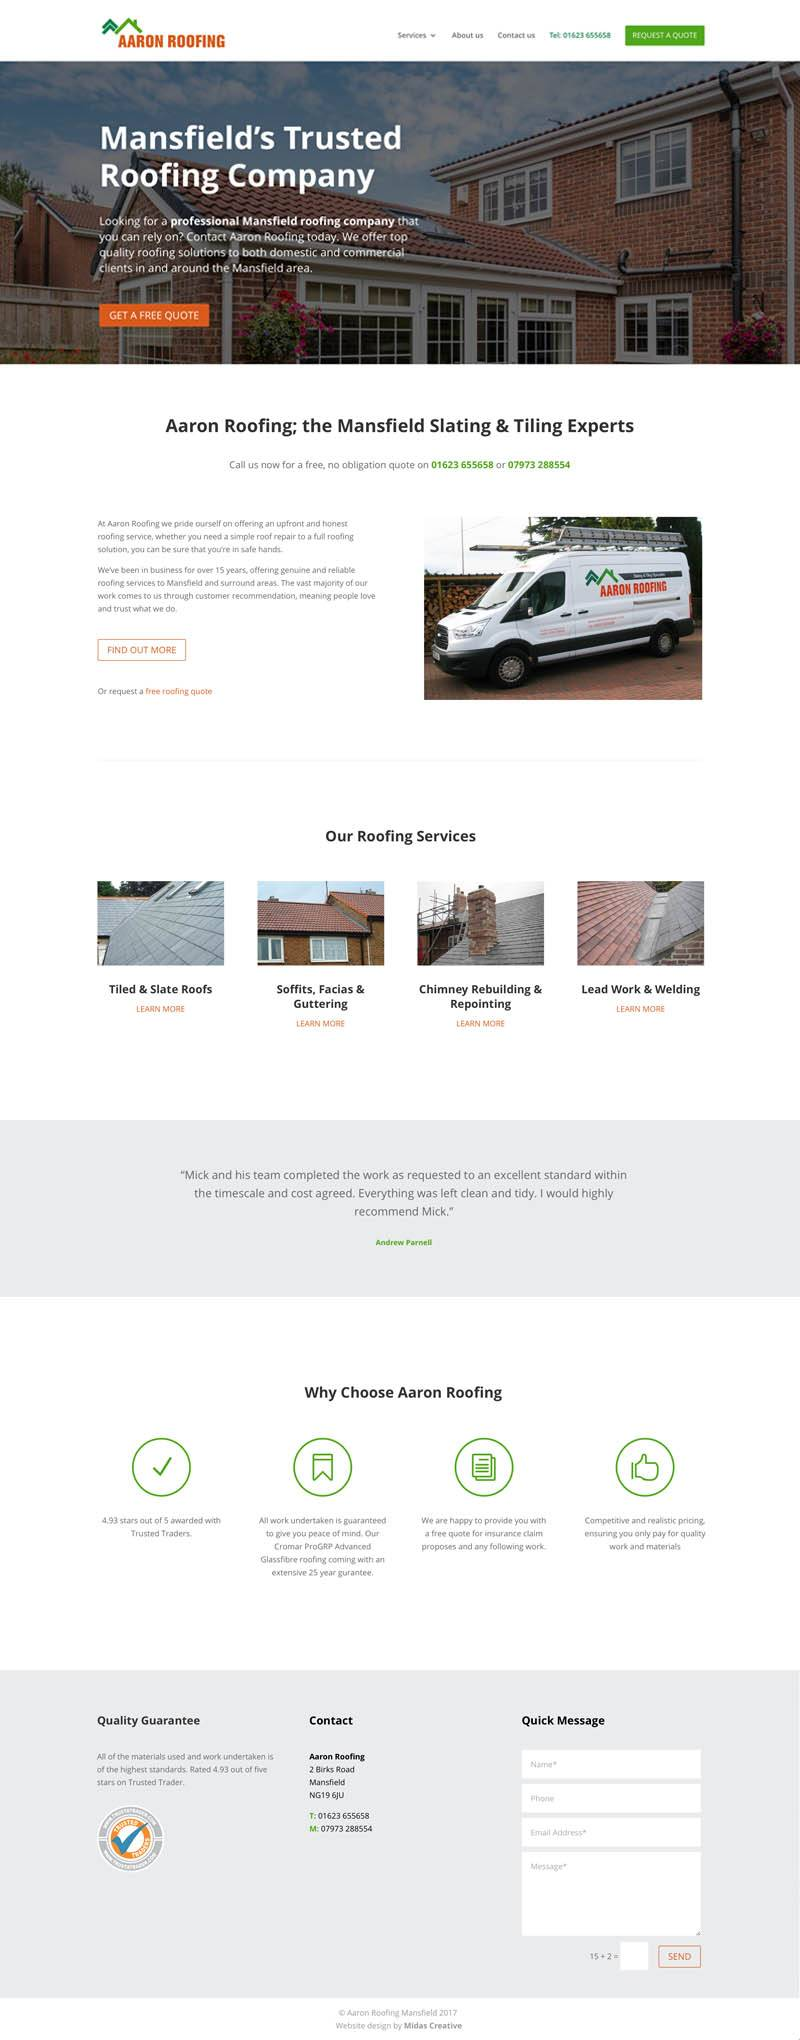 Roofing company website design for Aaron Roofing